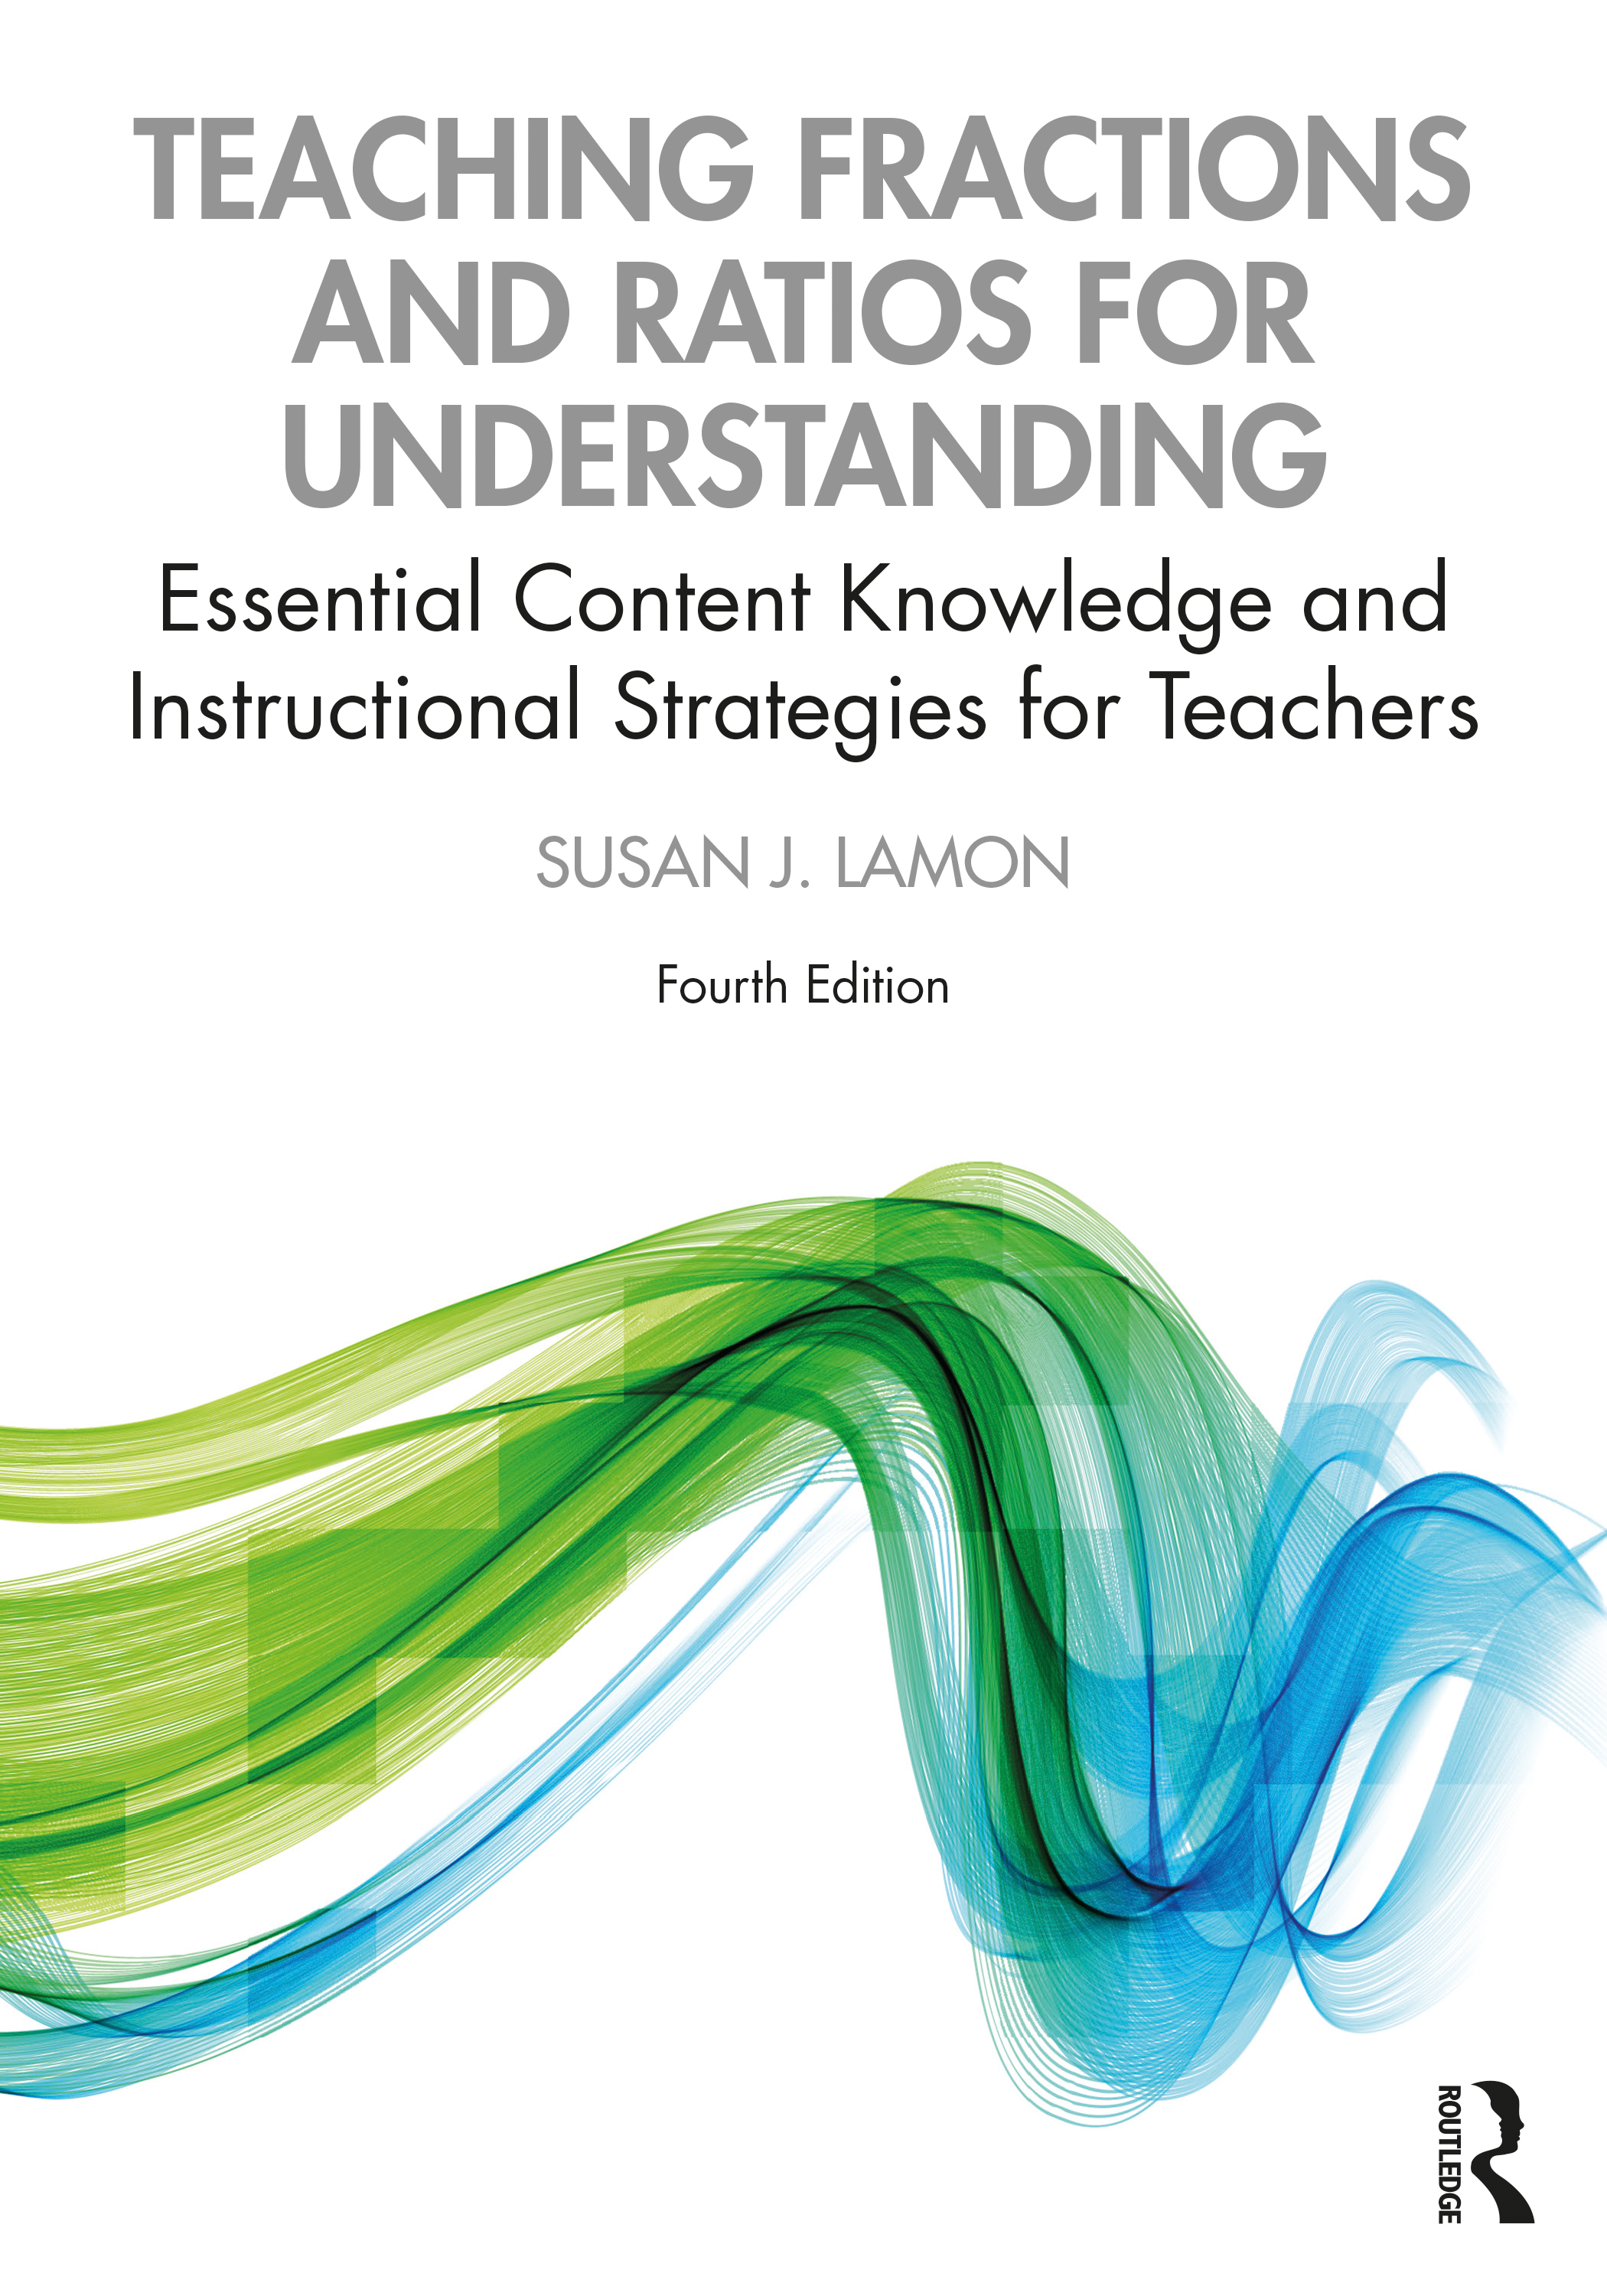 Teaching Fractions and Ratios for Understanding: Essential Content Knowledge and Instructional Strategies for Teachers book cover